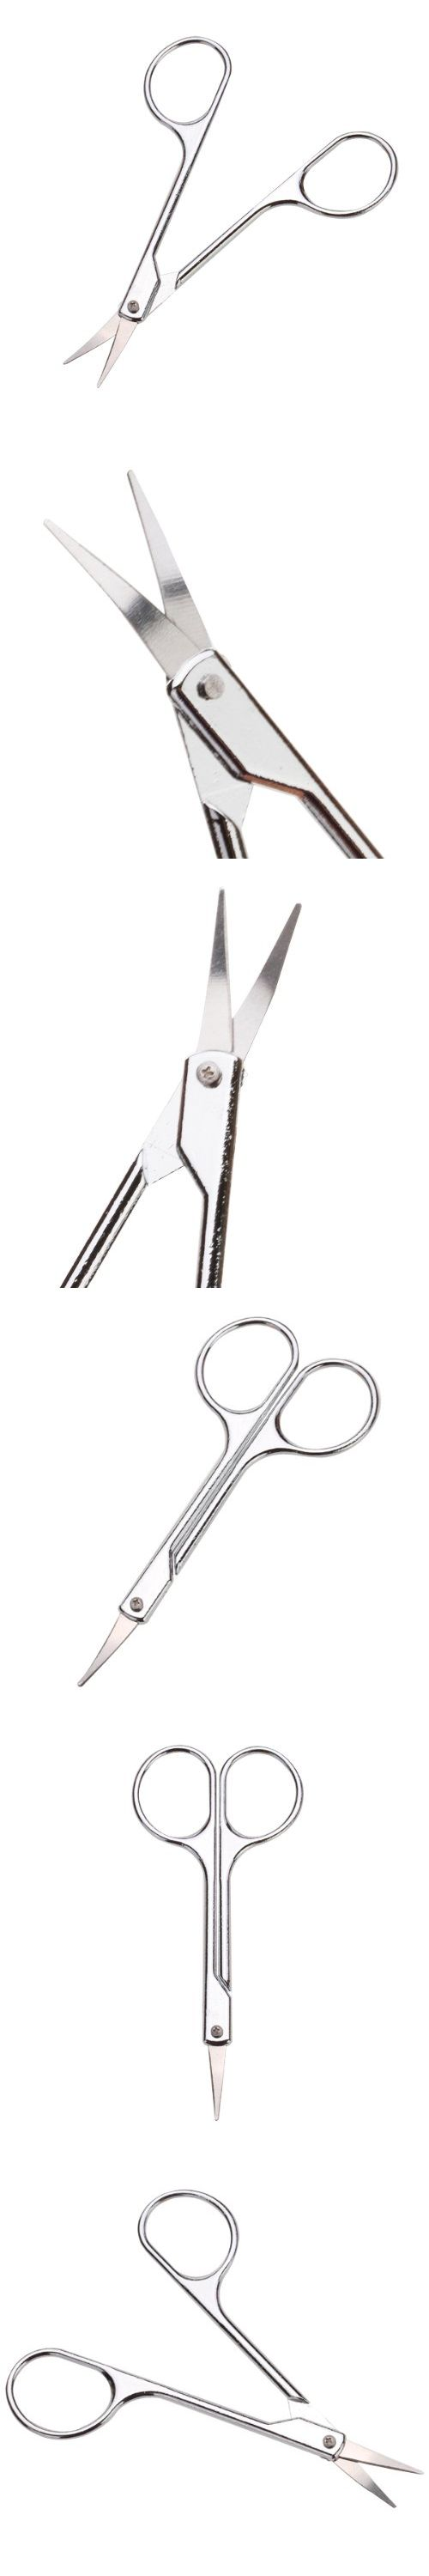 2pcs Curved Trimming Eyebrows Hangnail Cuticle Nail Nose Scissors